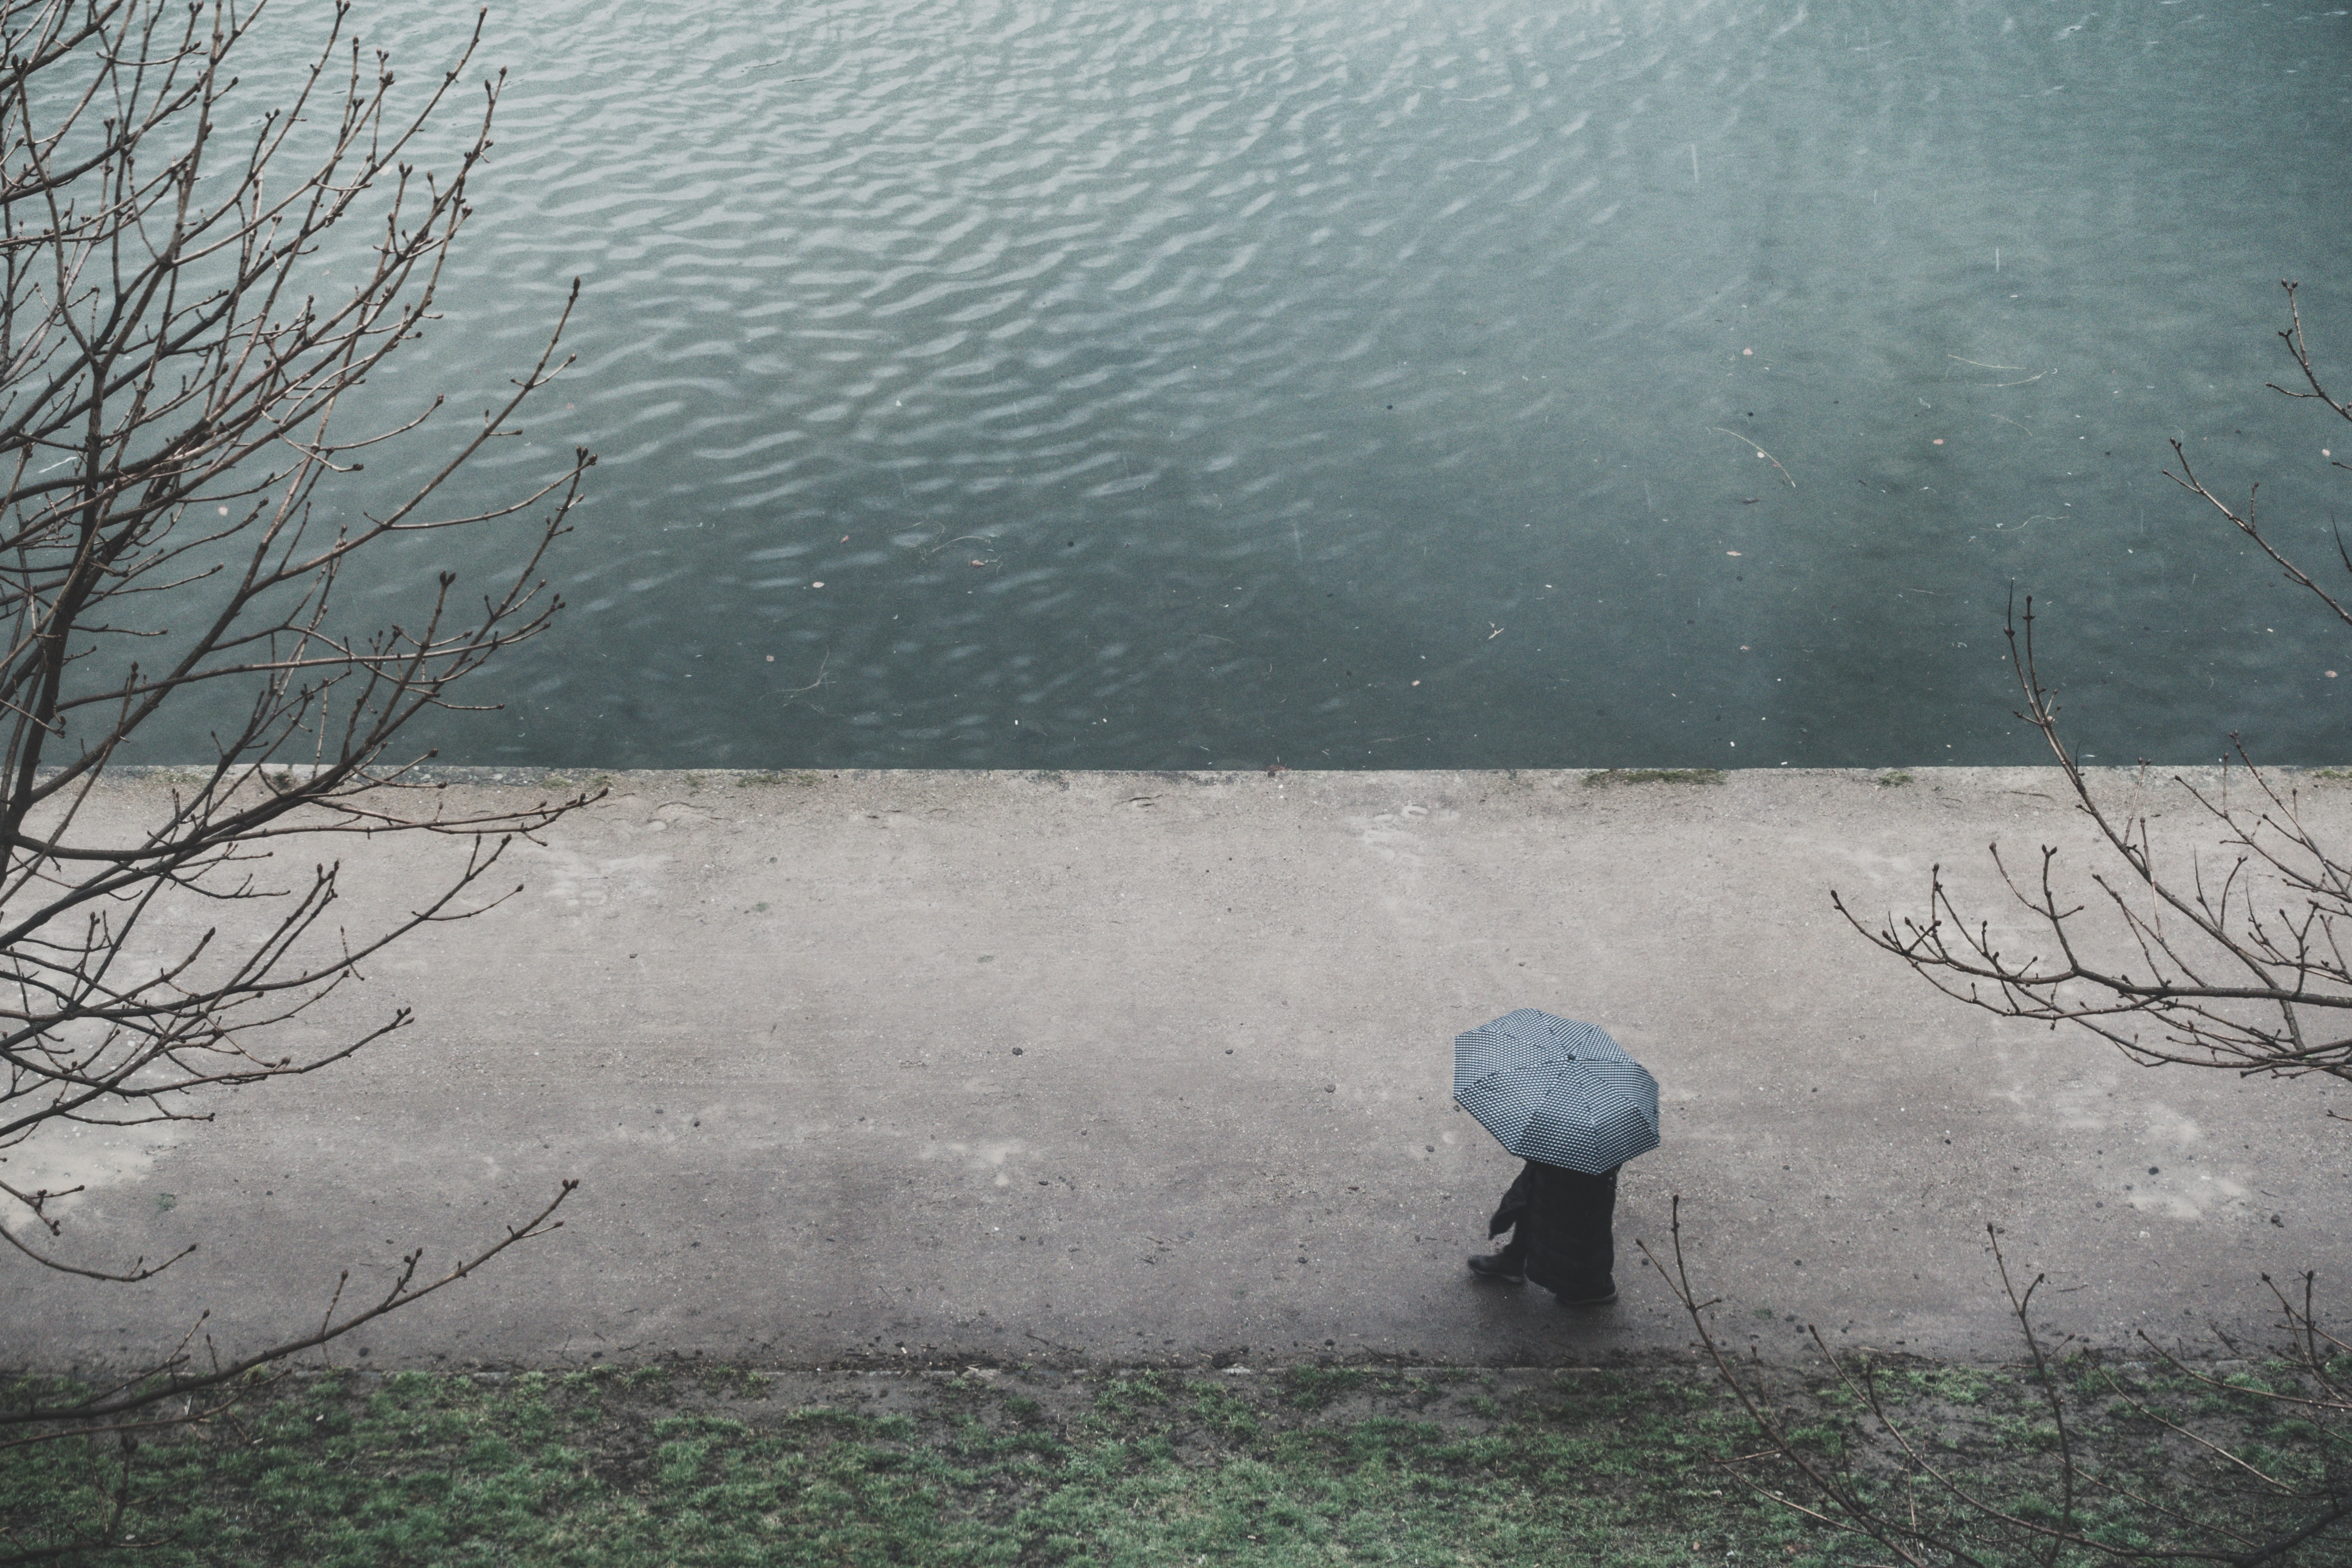 person with umbrella walking on road near body of water during daytime